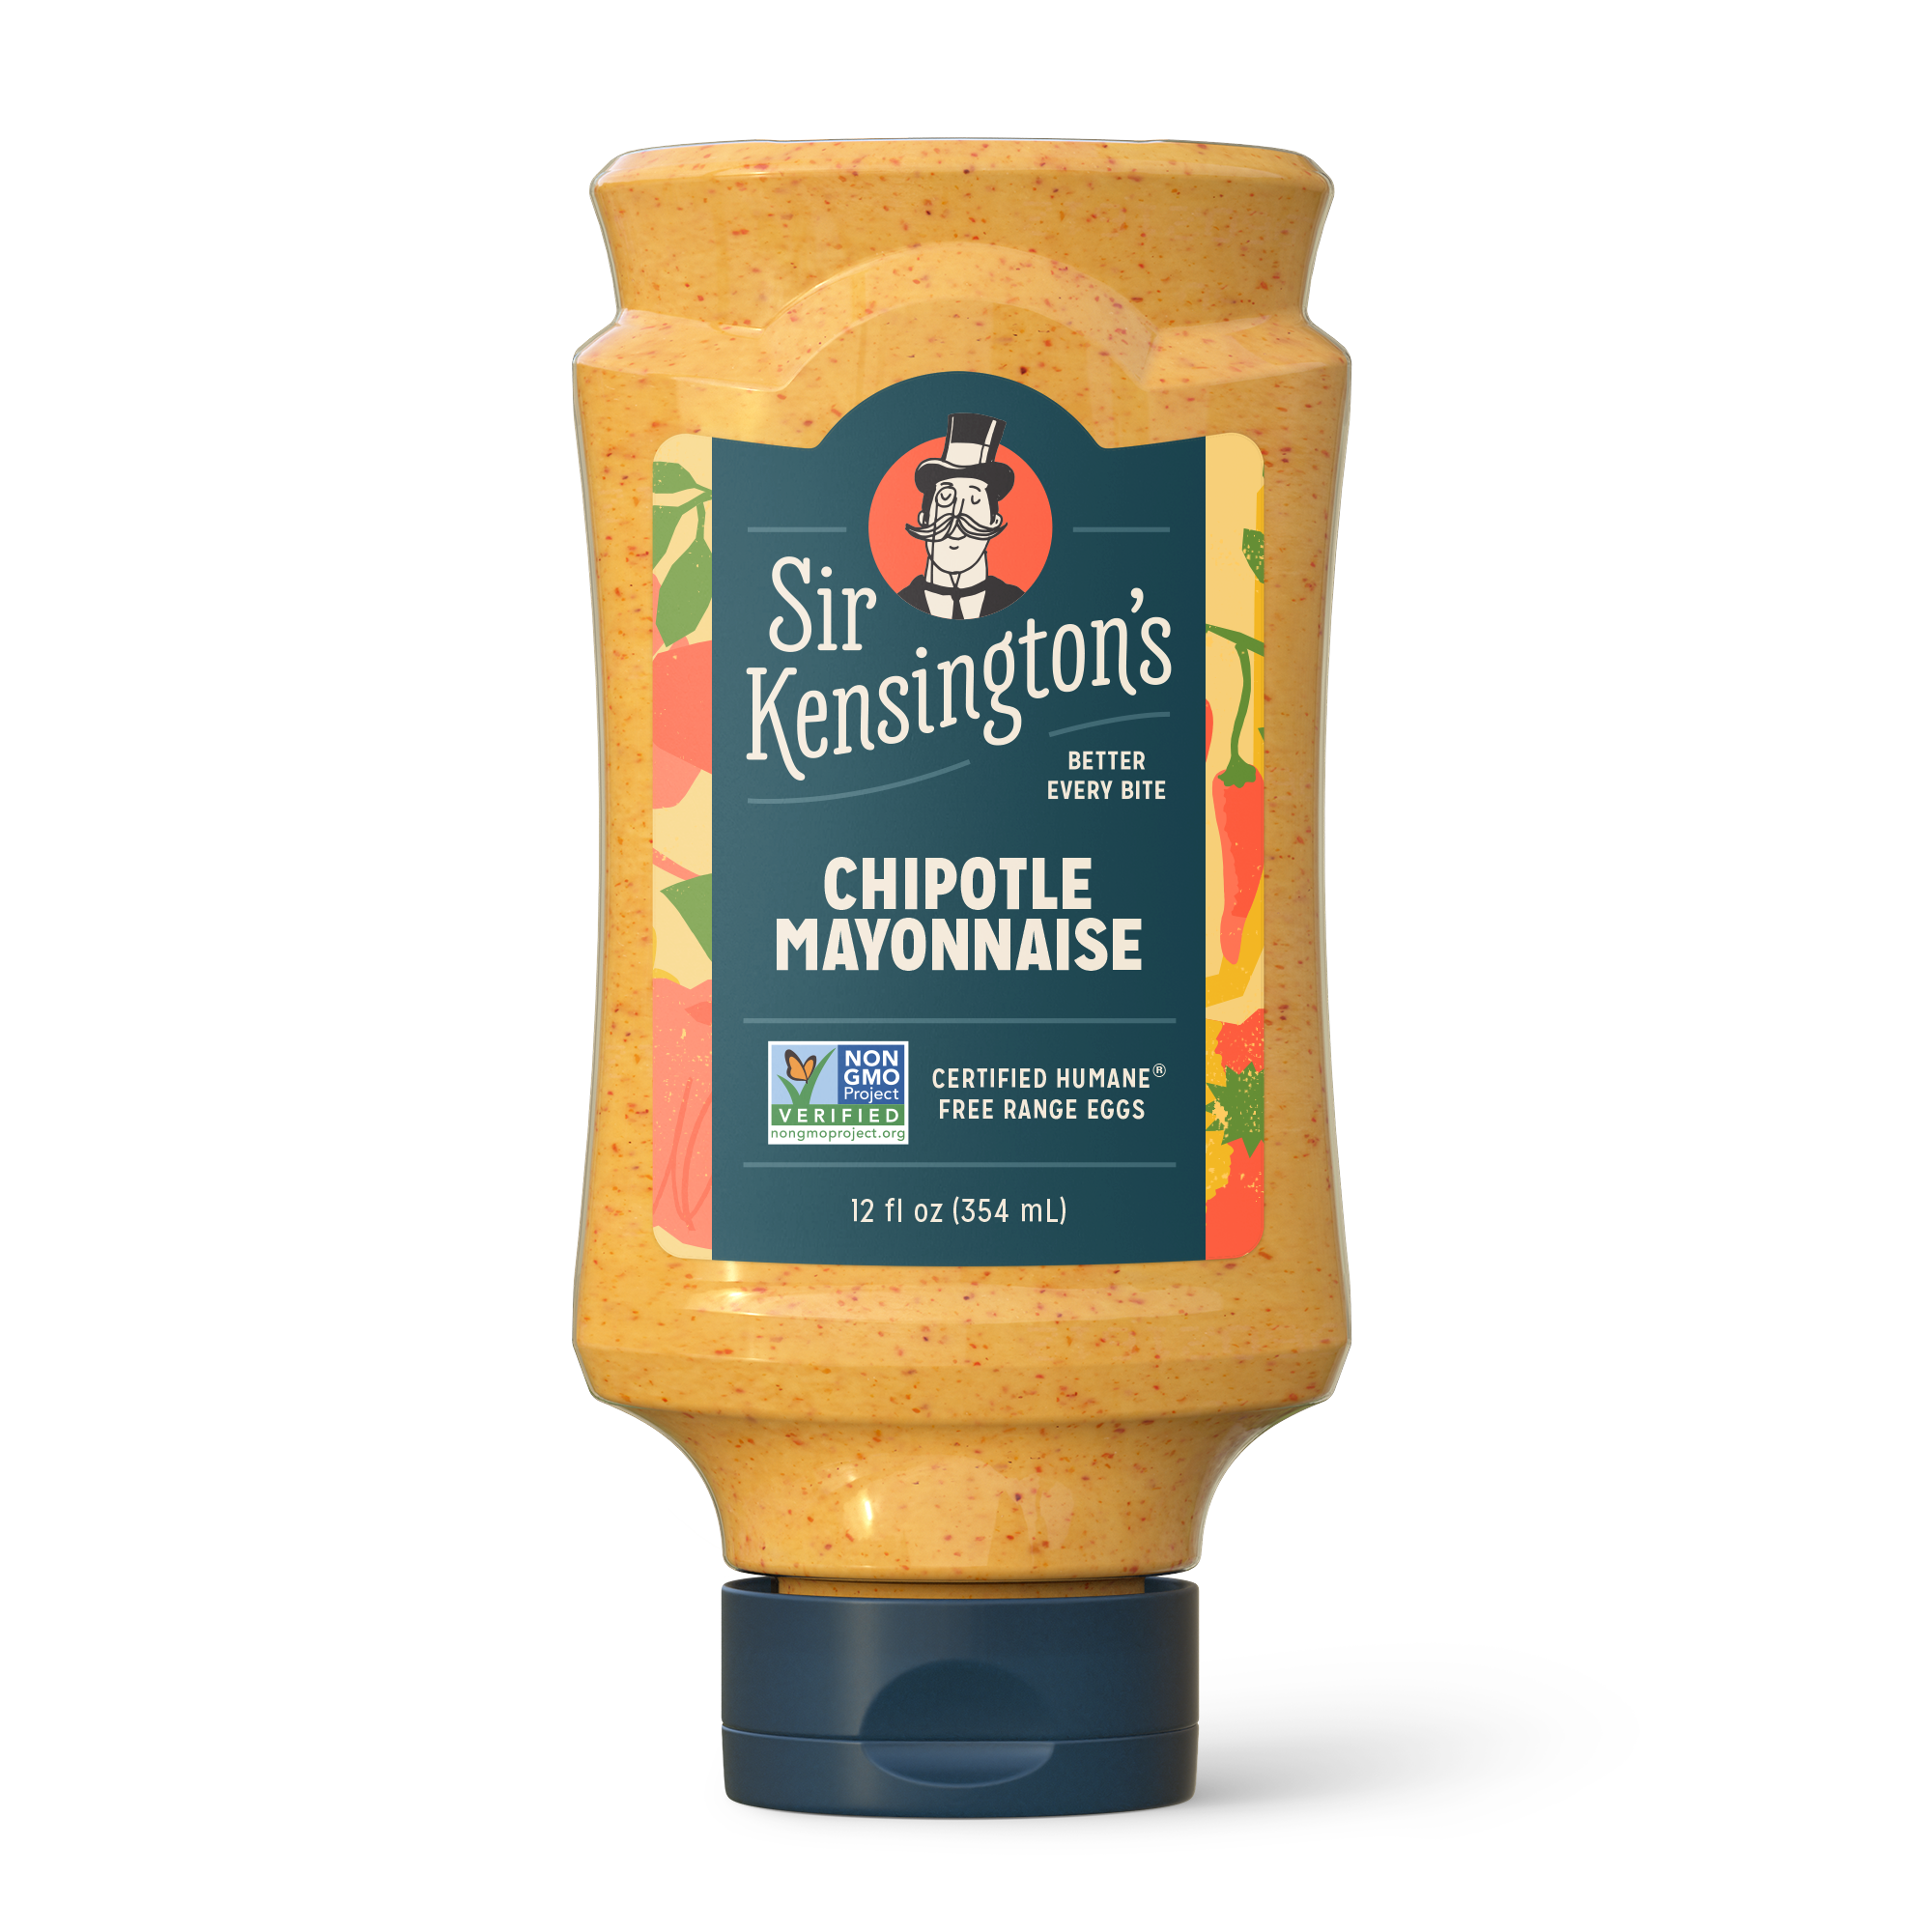 Image of Chipotle Mayonnaise